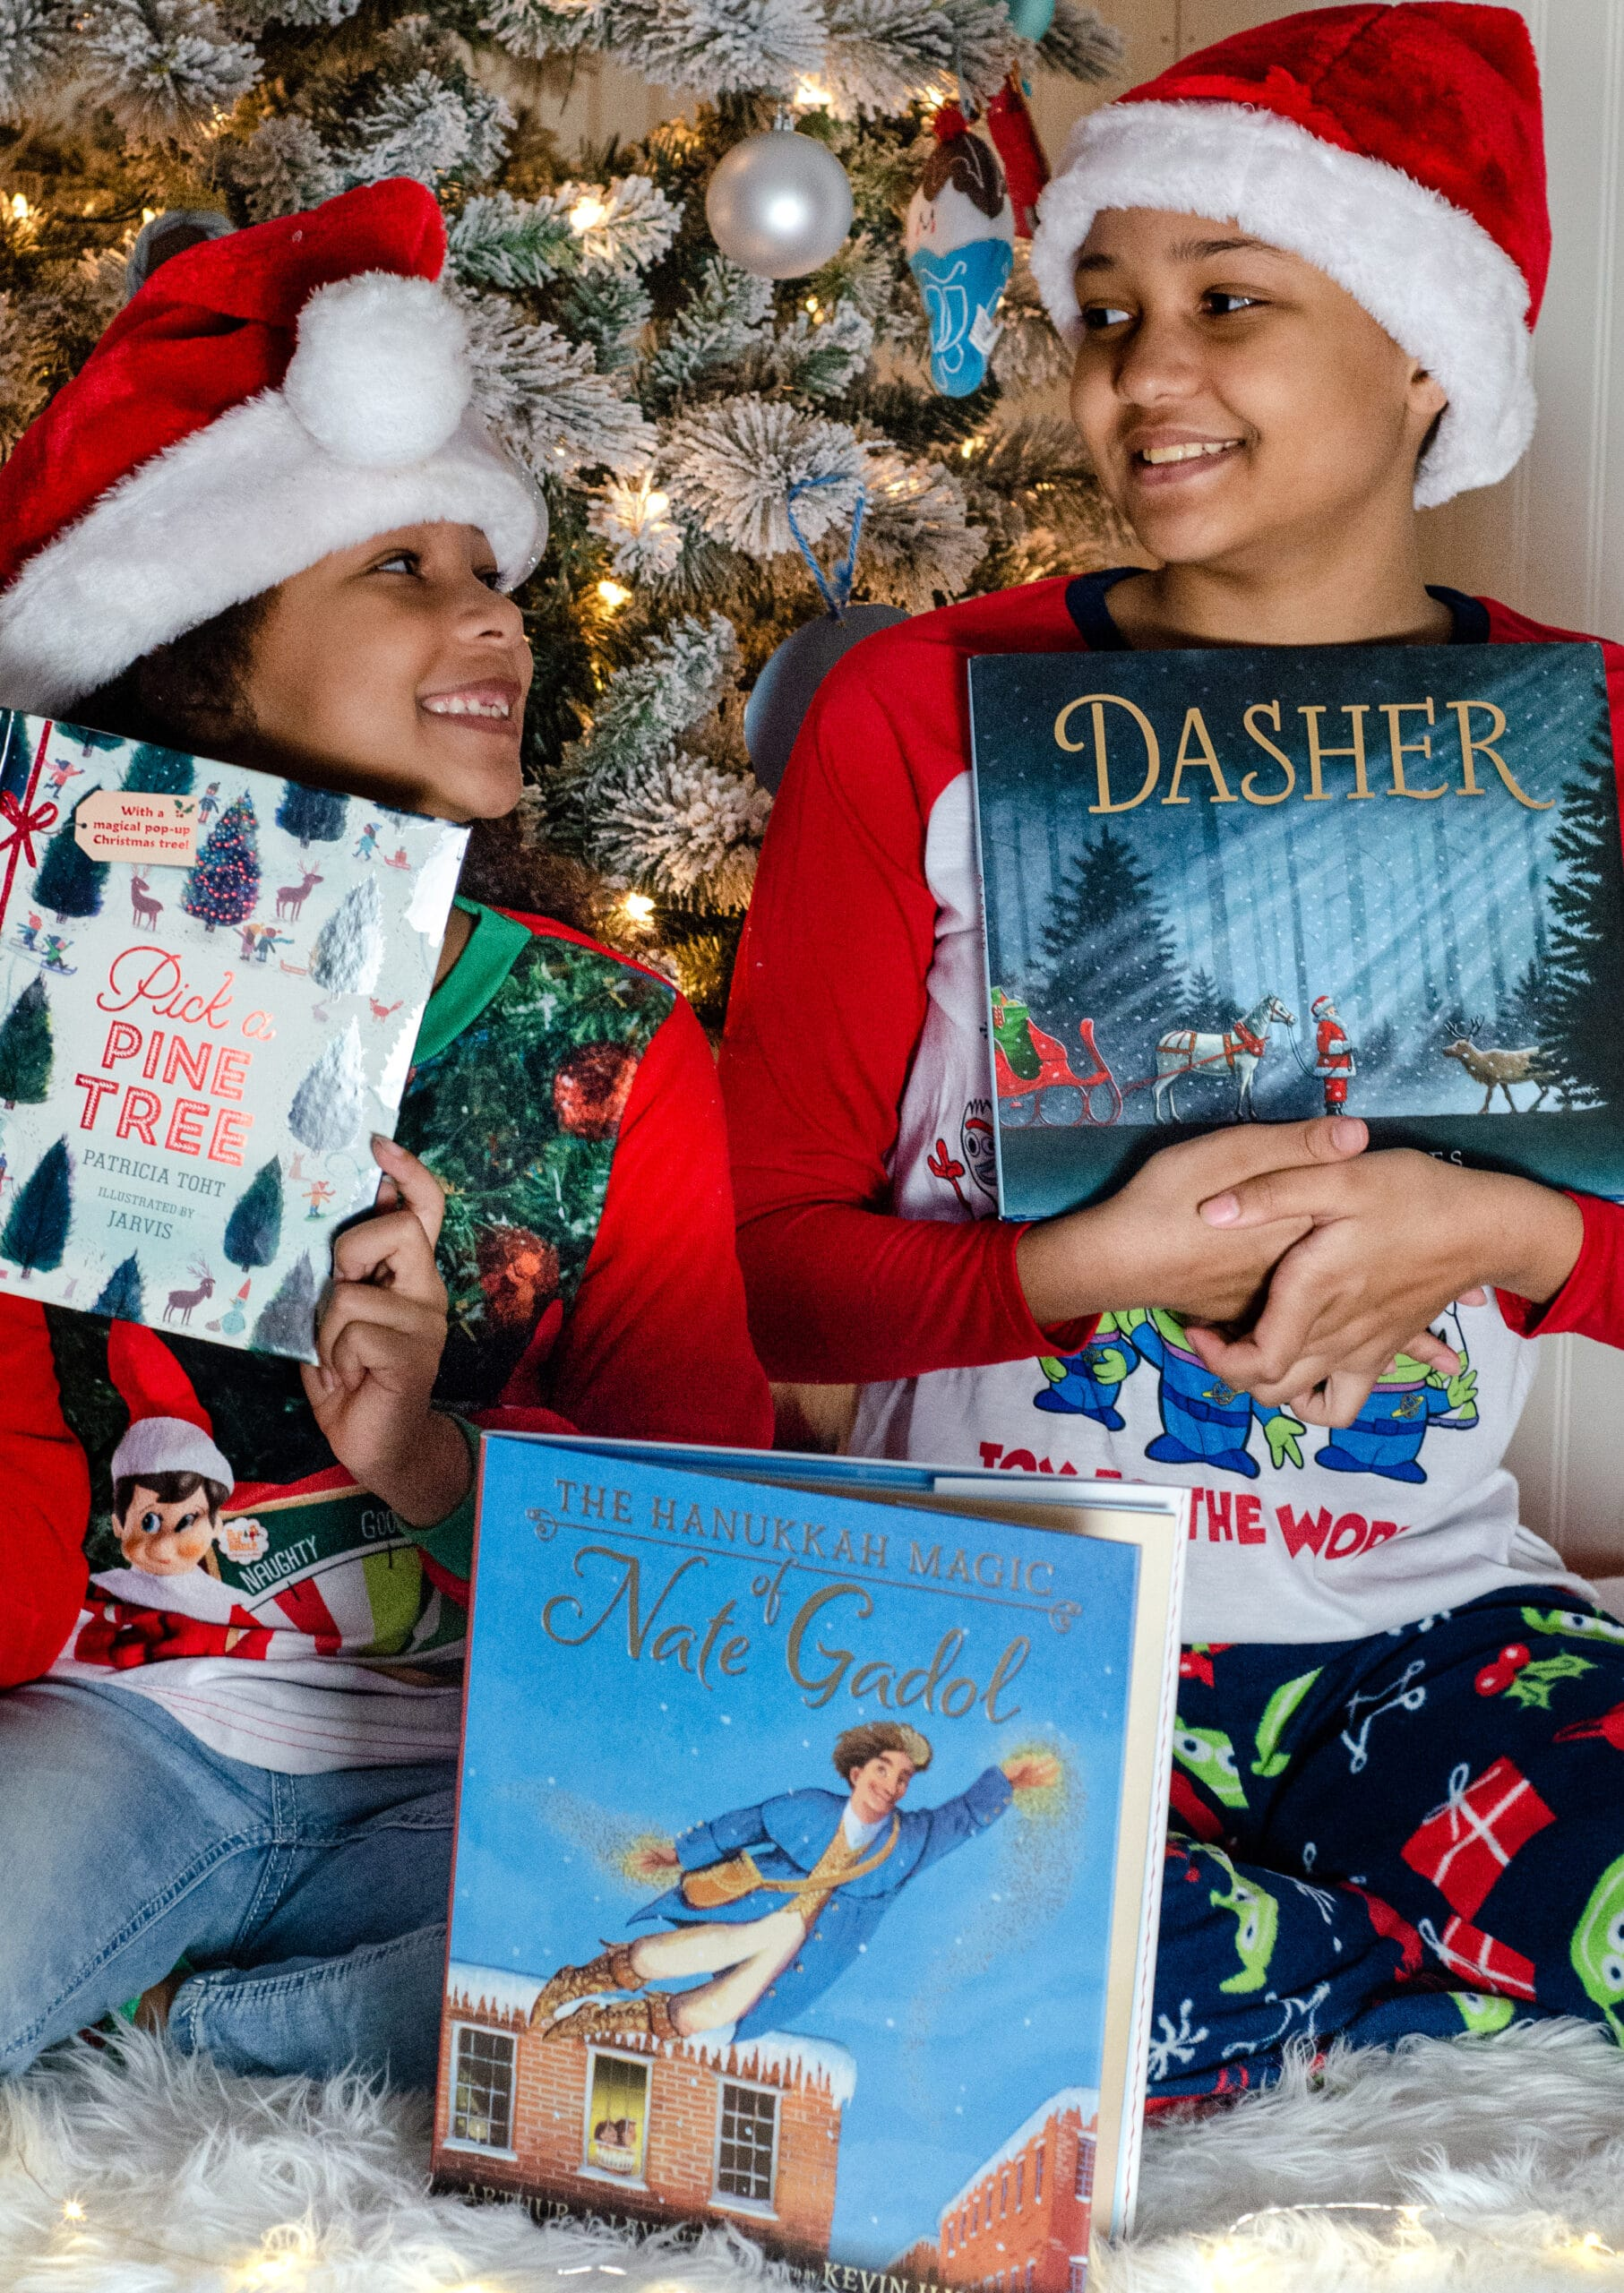 Holiday Books For Kids Ideas. Give the gift of literature this holiday season! These wonderful holiday books for kids make great stocking stuffer gifts. Create your very own Christmas Tree Advent Calander using these Children's holiday books, simply stack them into a tree for a new fun holiday tradition.